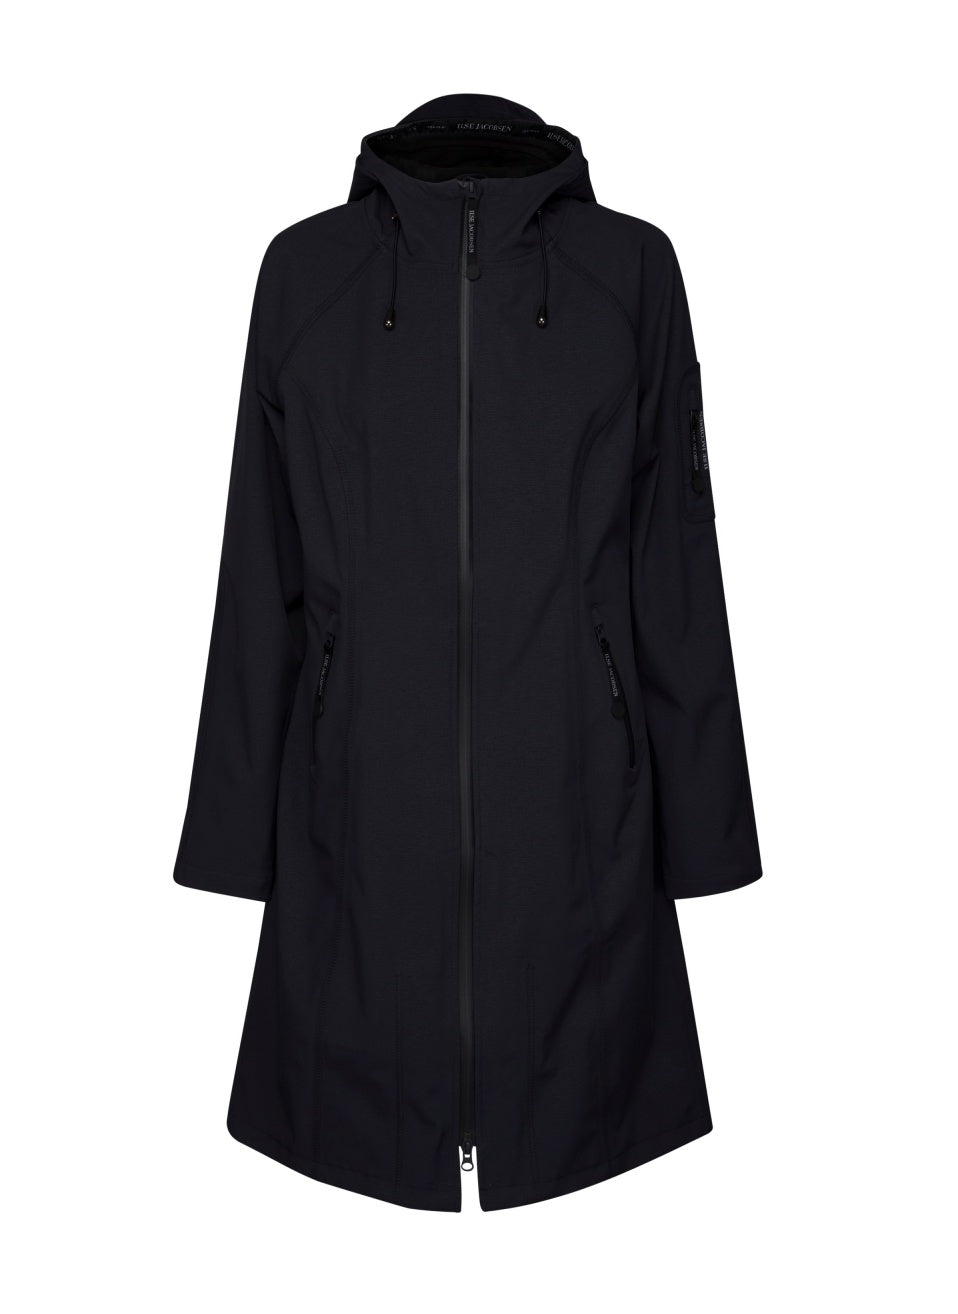 Ilse Jacobsen Rain 37 Long Lined Jacket - Black